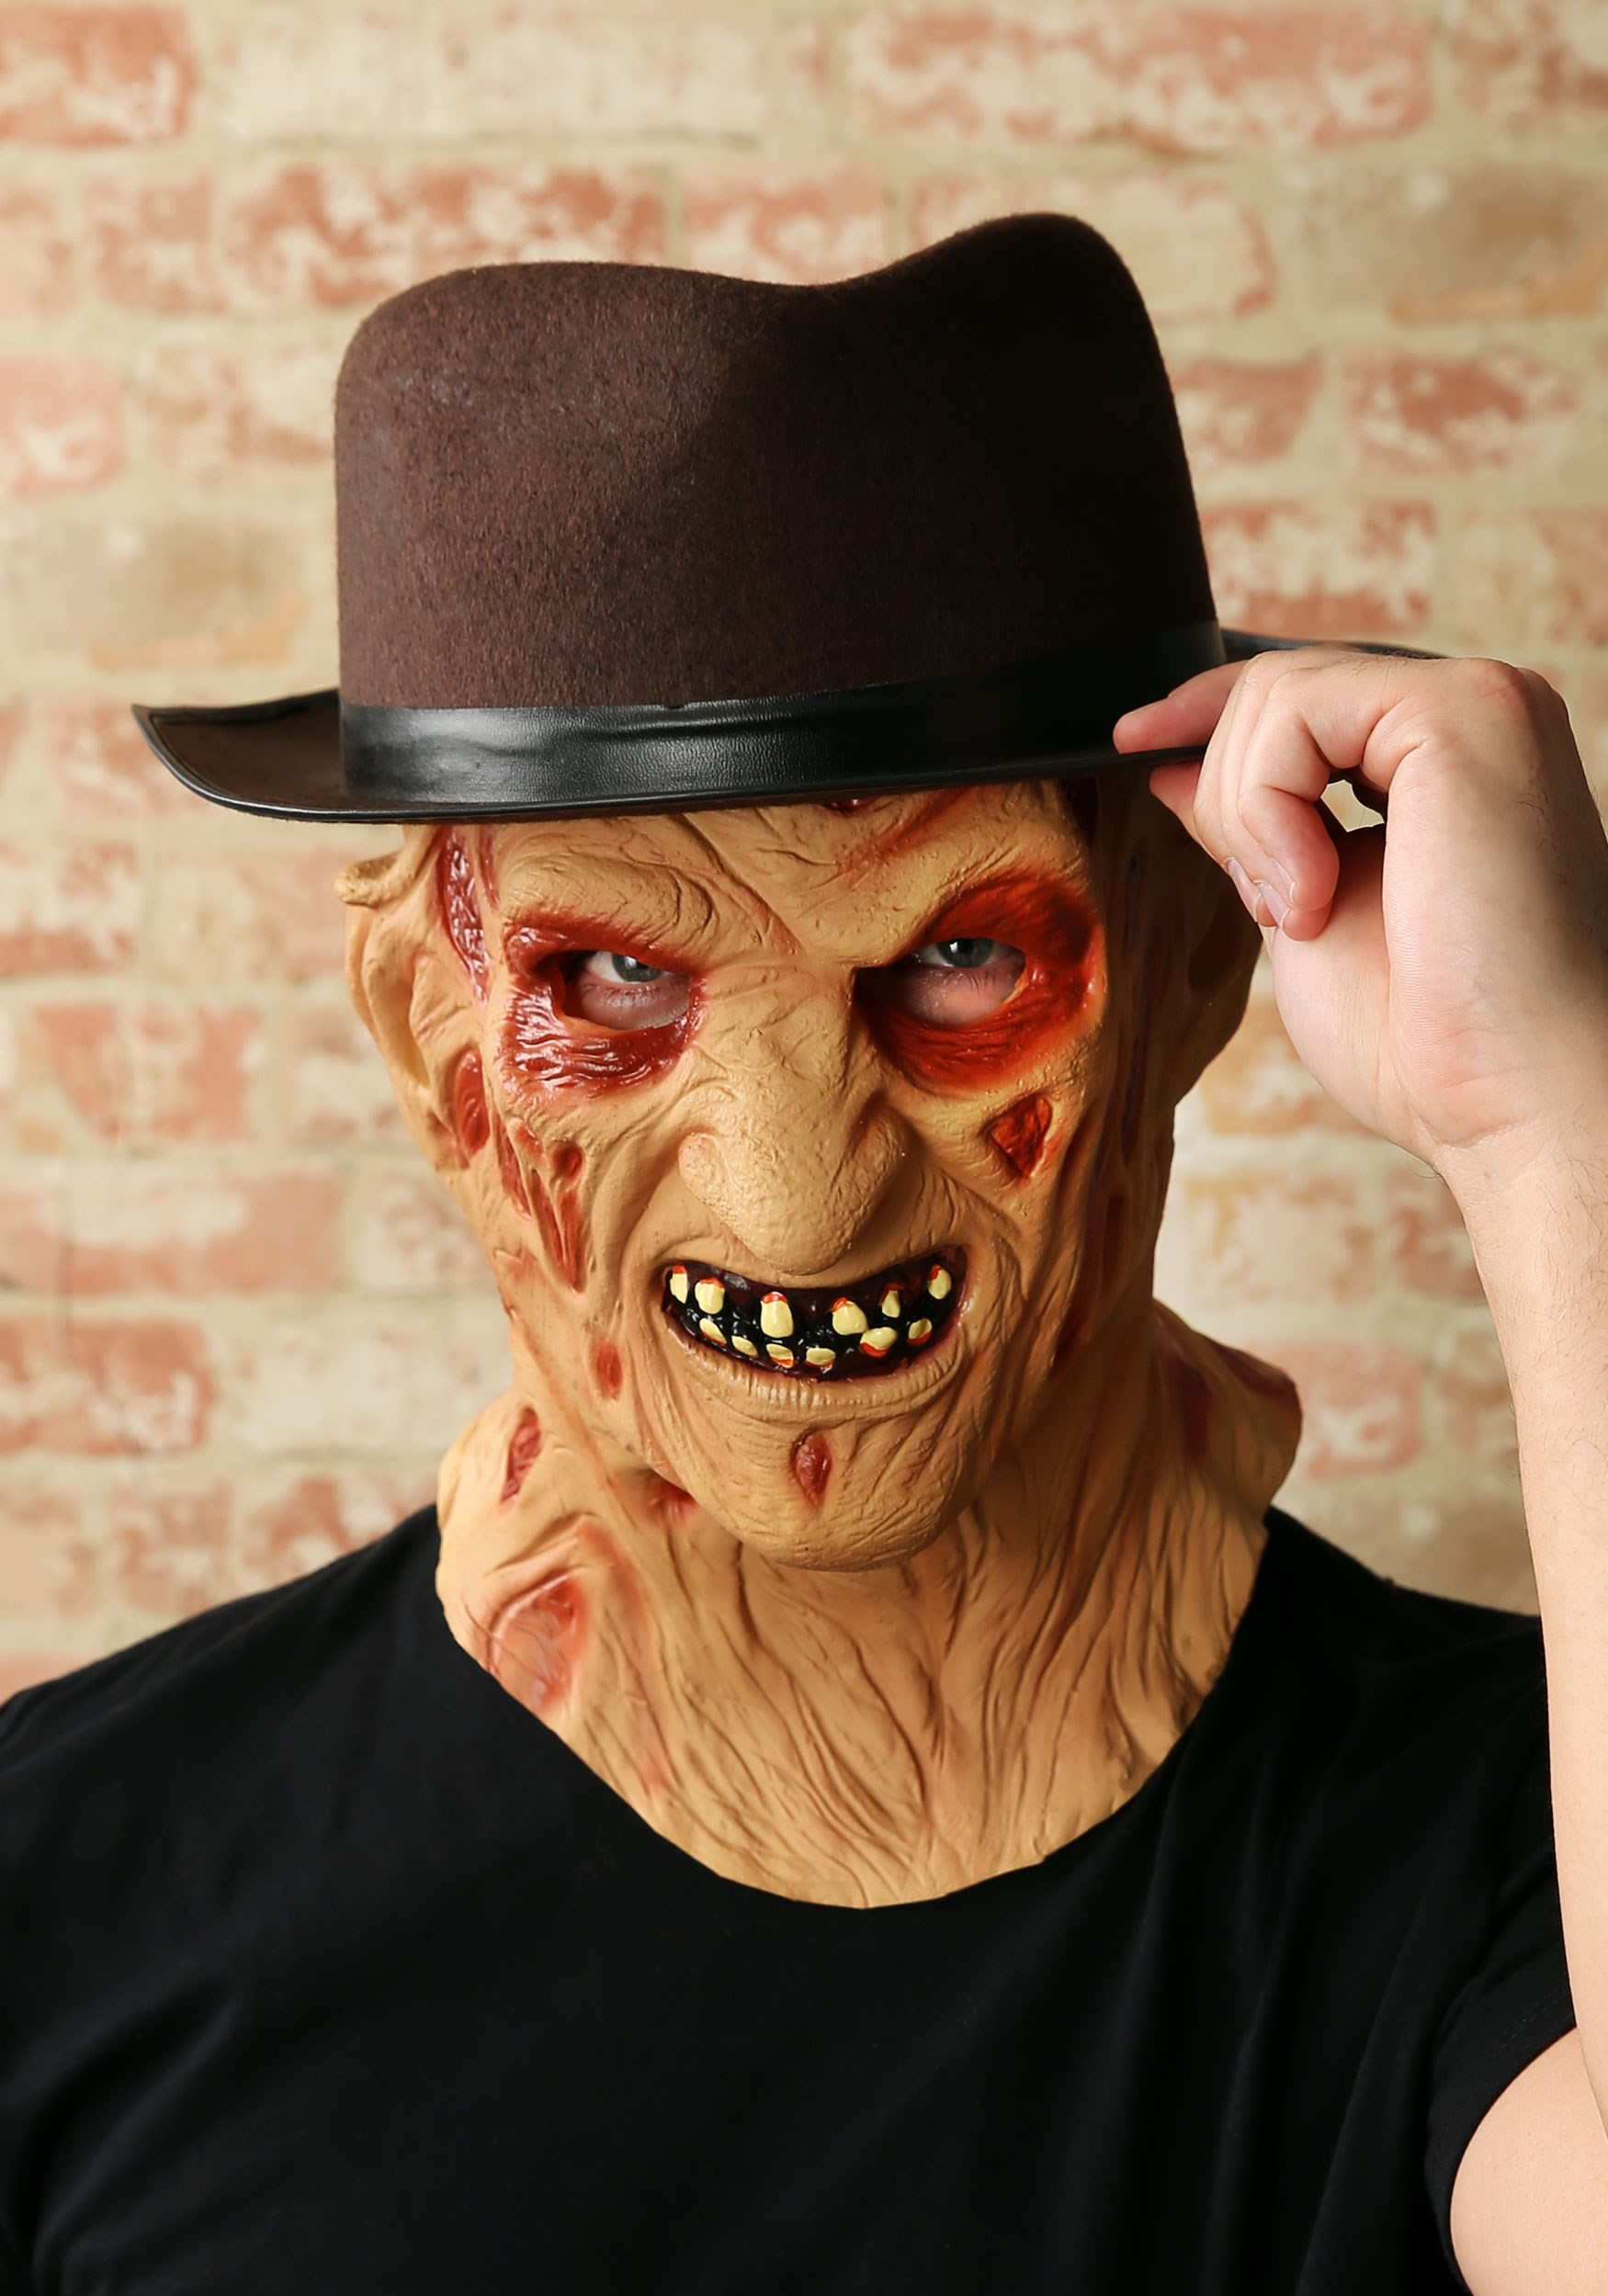 Realistic Freddy Krueger Mask from Nightmare on Elm Street